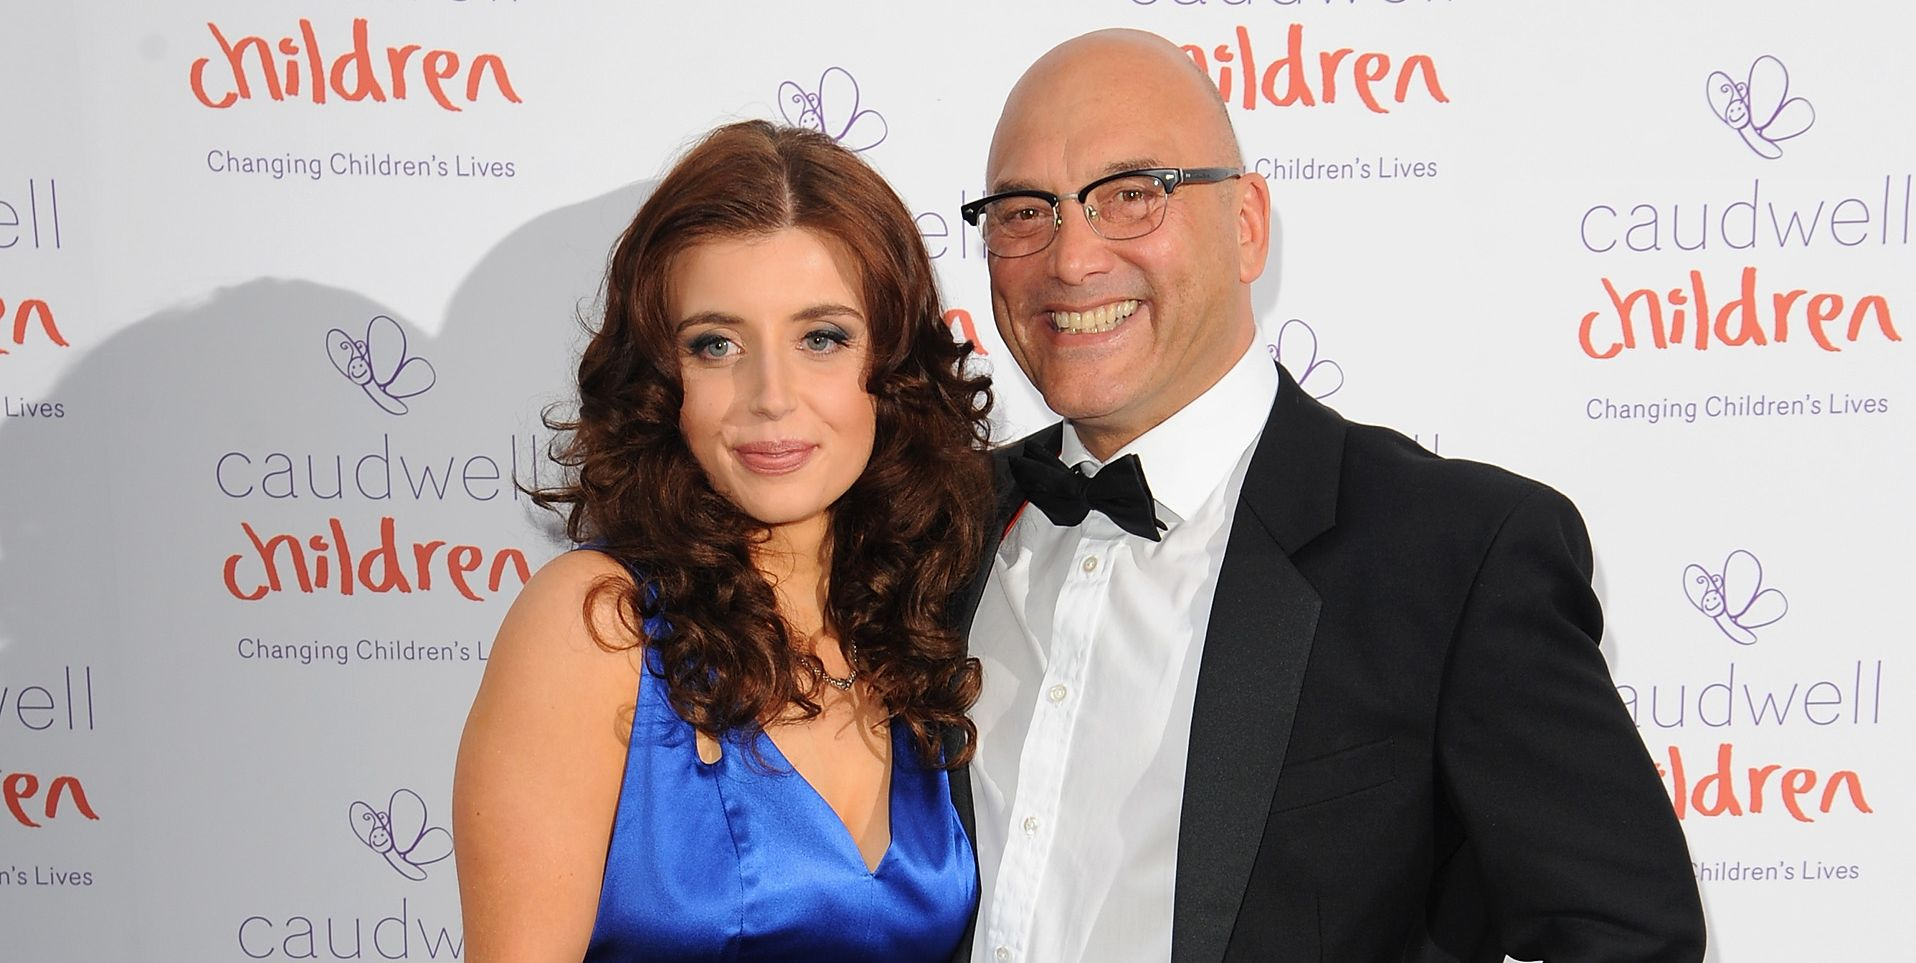 The Caudwell Children Butterfly Ball